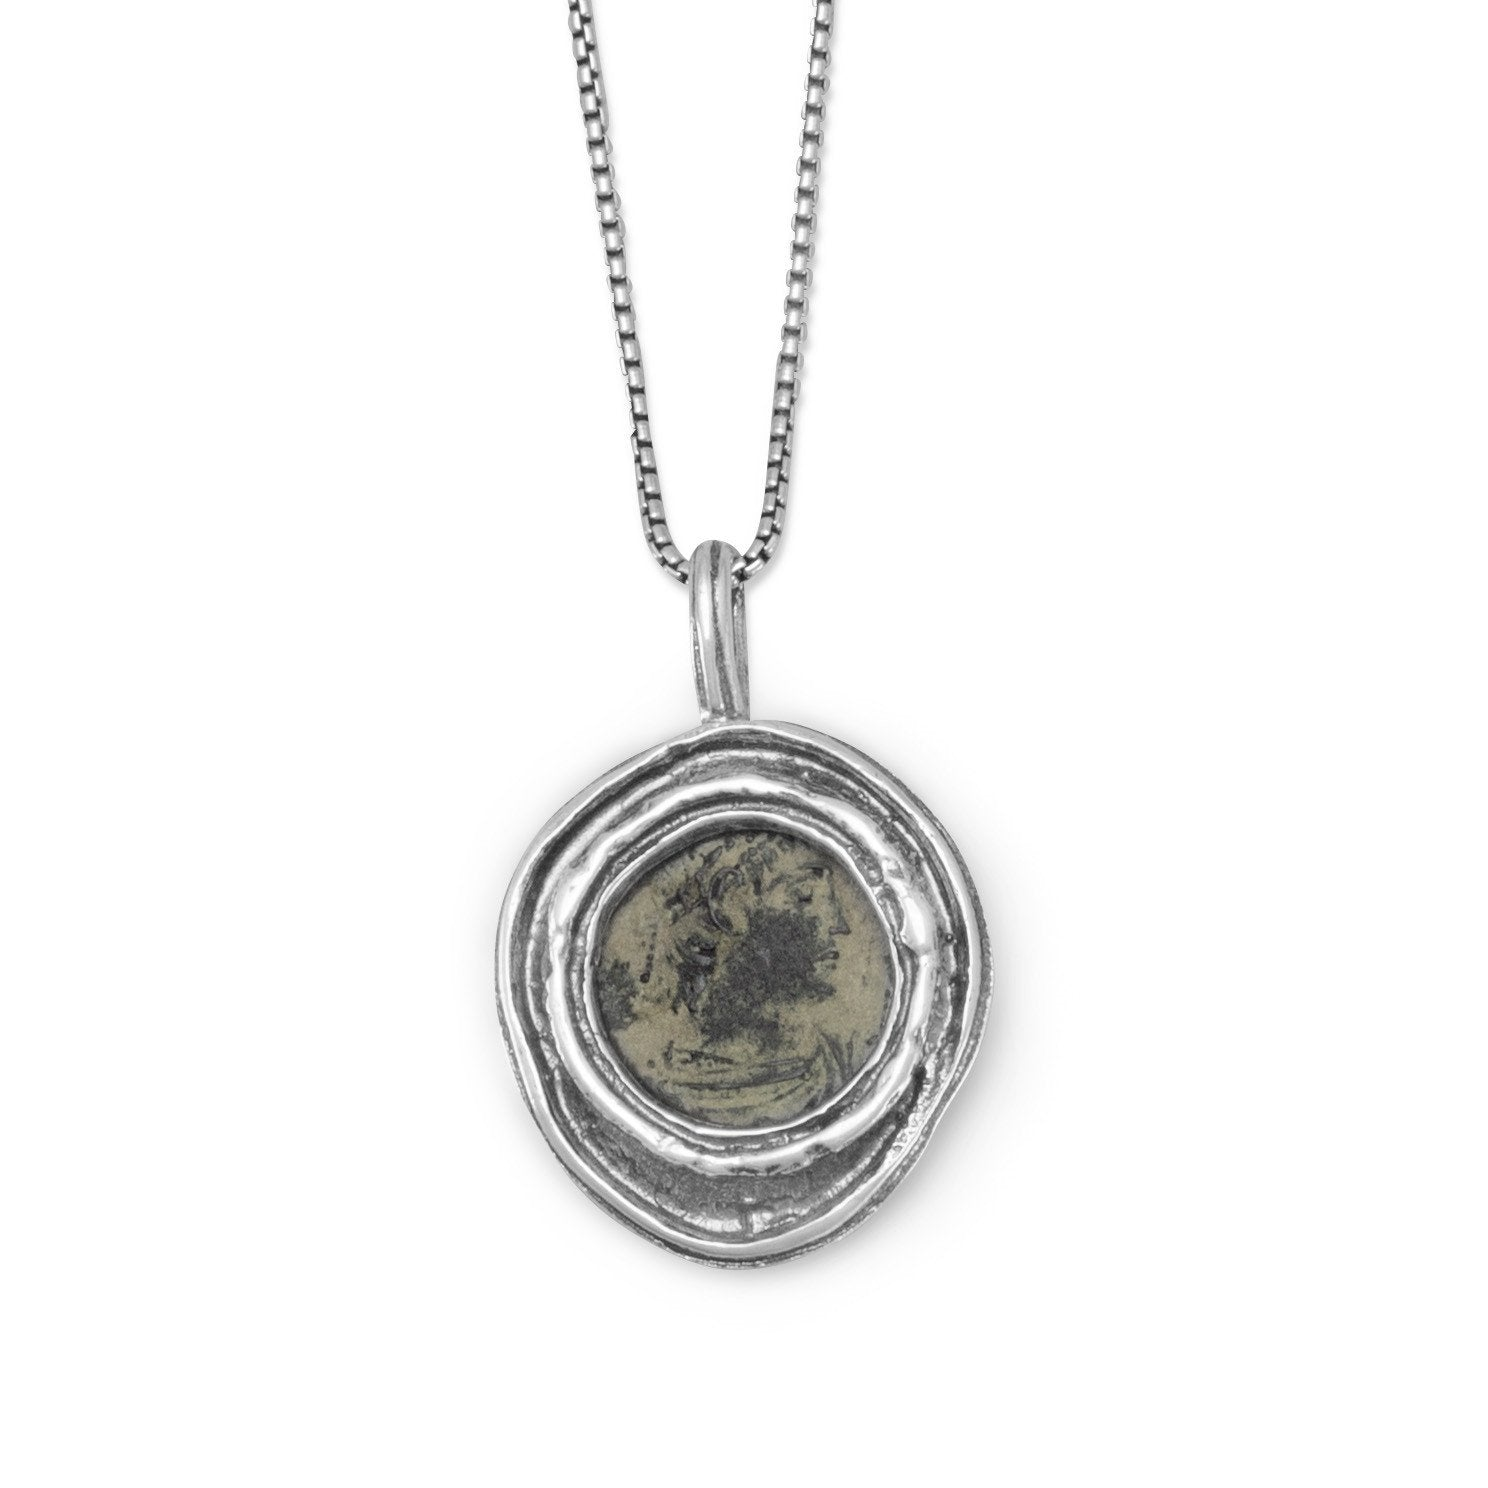 pendants coin roman hb toah of heilbrunn with works gold timeline work art necklace